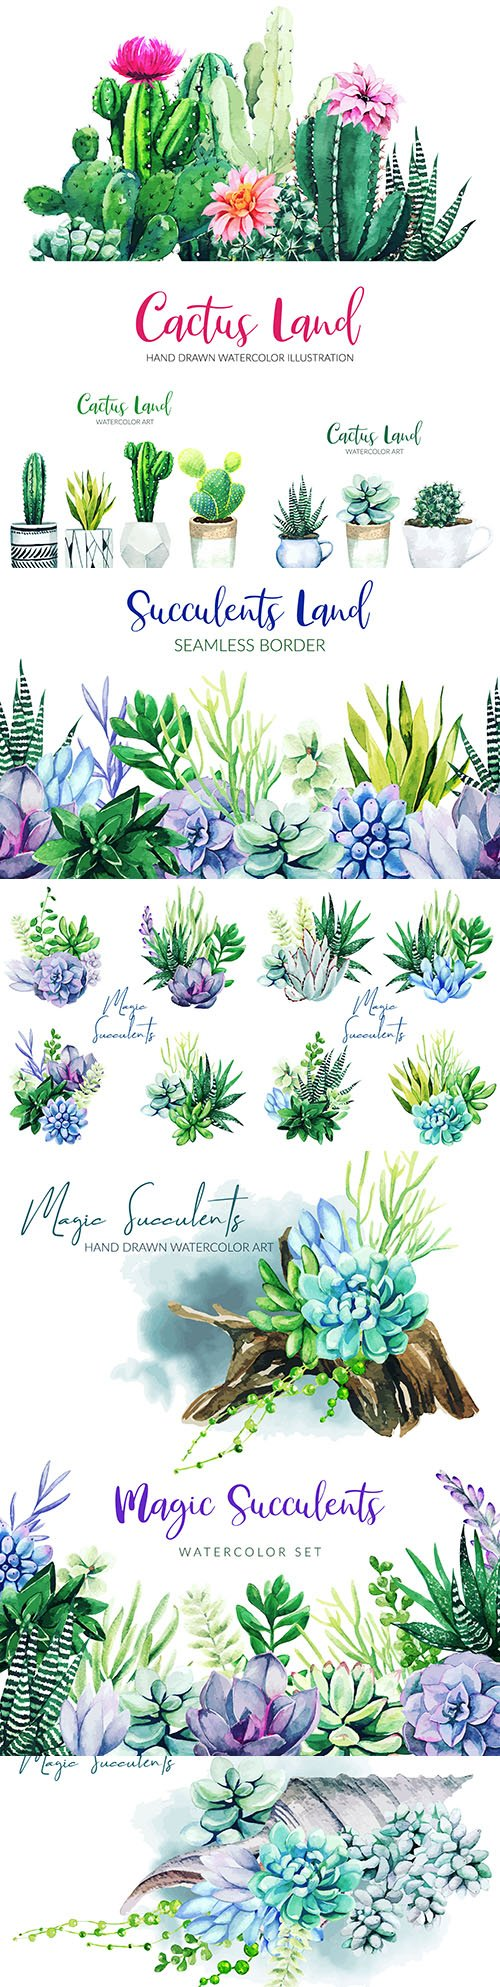 Cactus and tropical flowers design watercolor illustrations